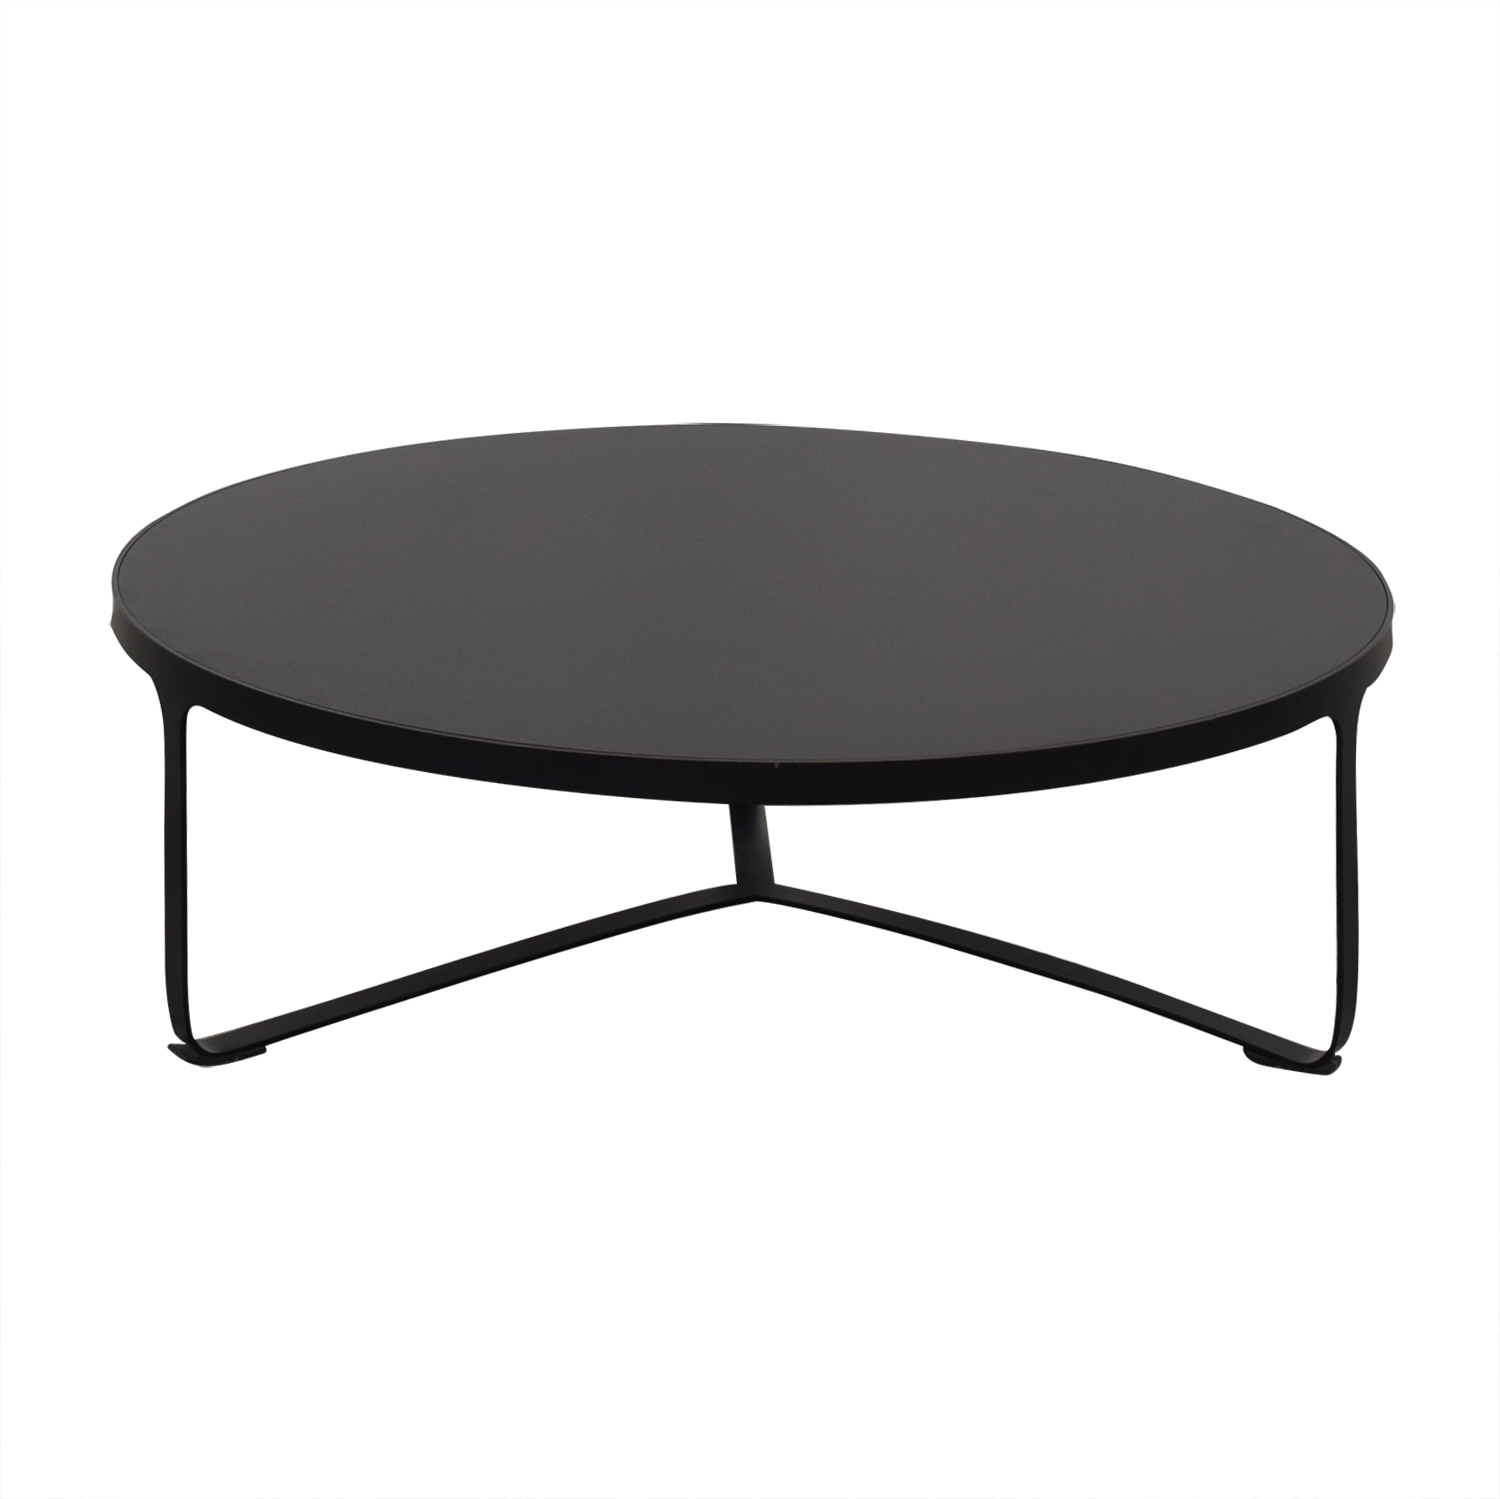 Design Within Reach Design Within Reach Cage Coffee Table by Tacchini nj